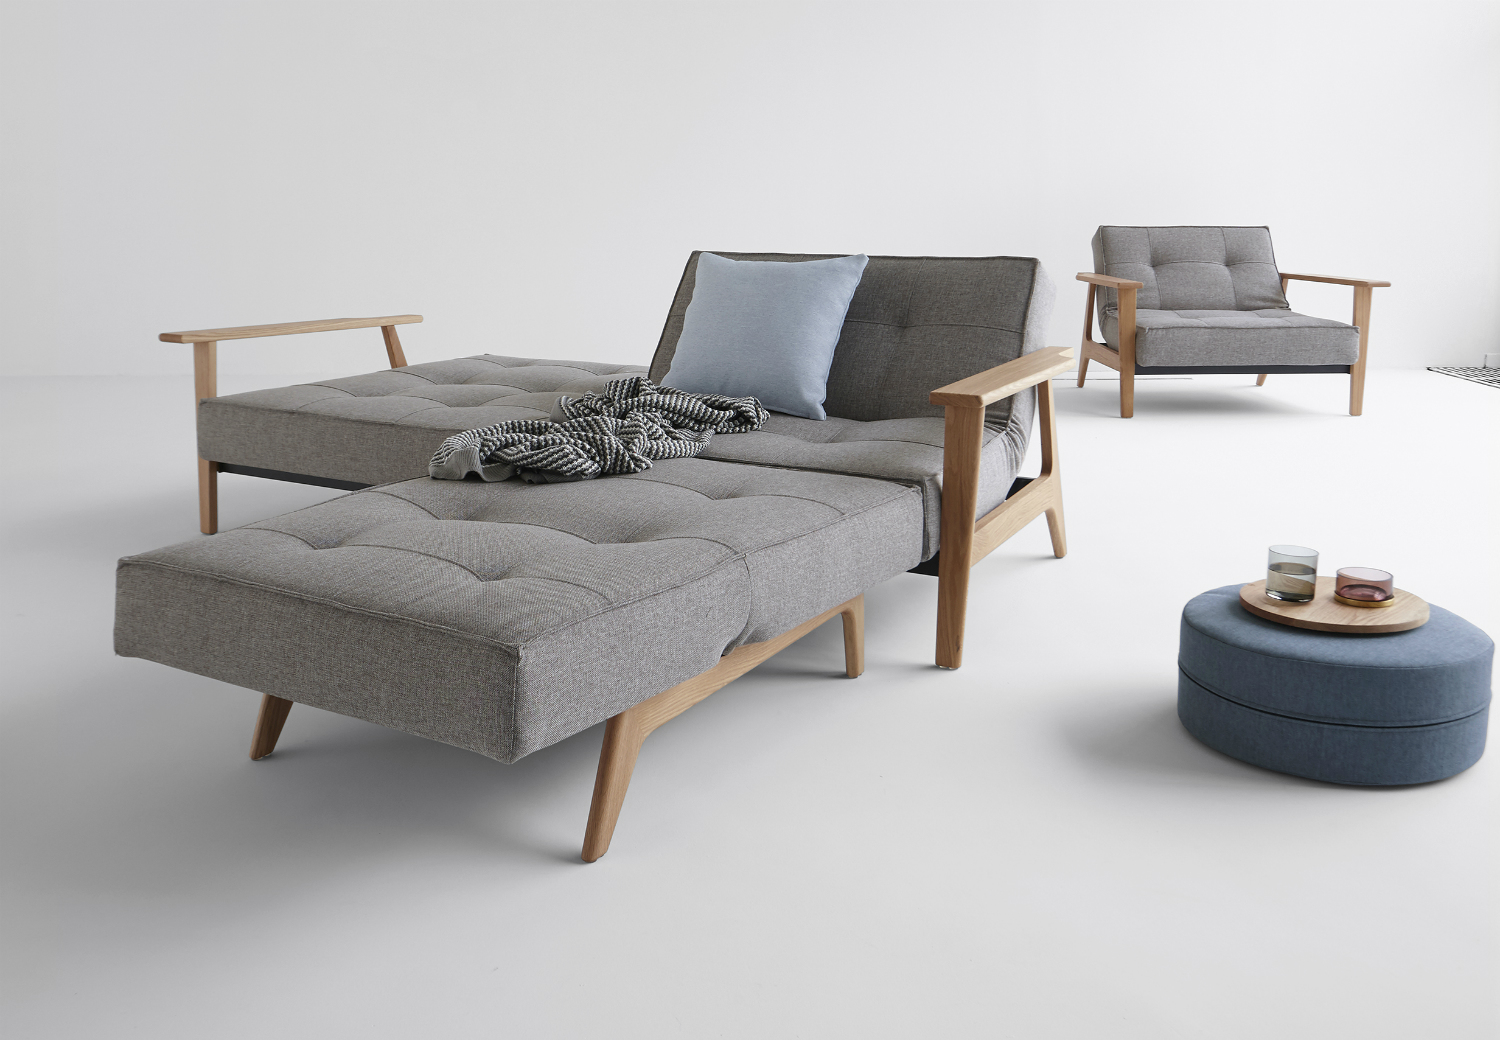 splitback frej  innovation living melbourne - sofa bed